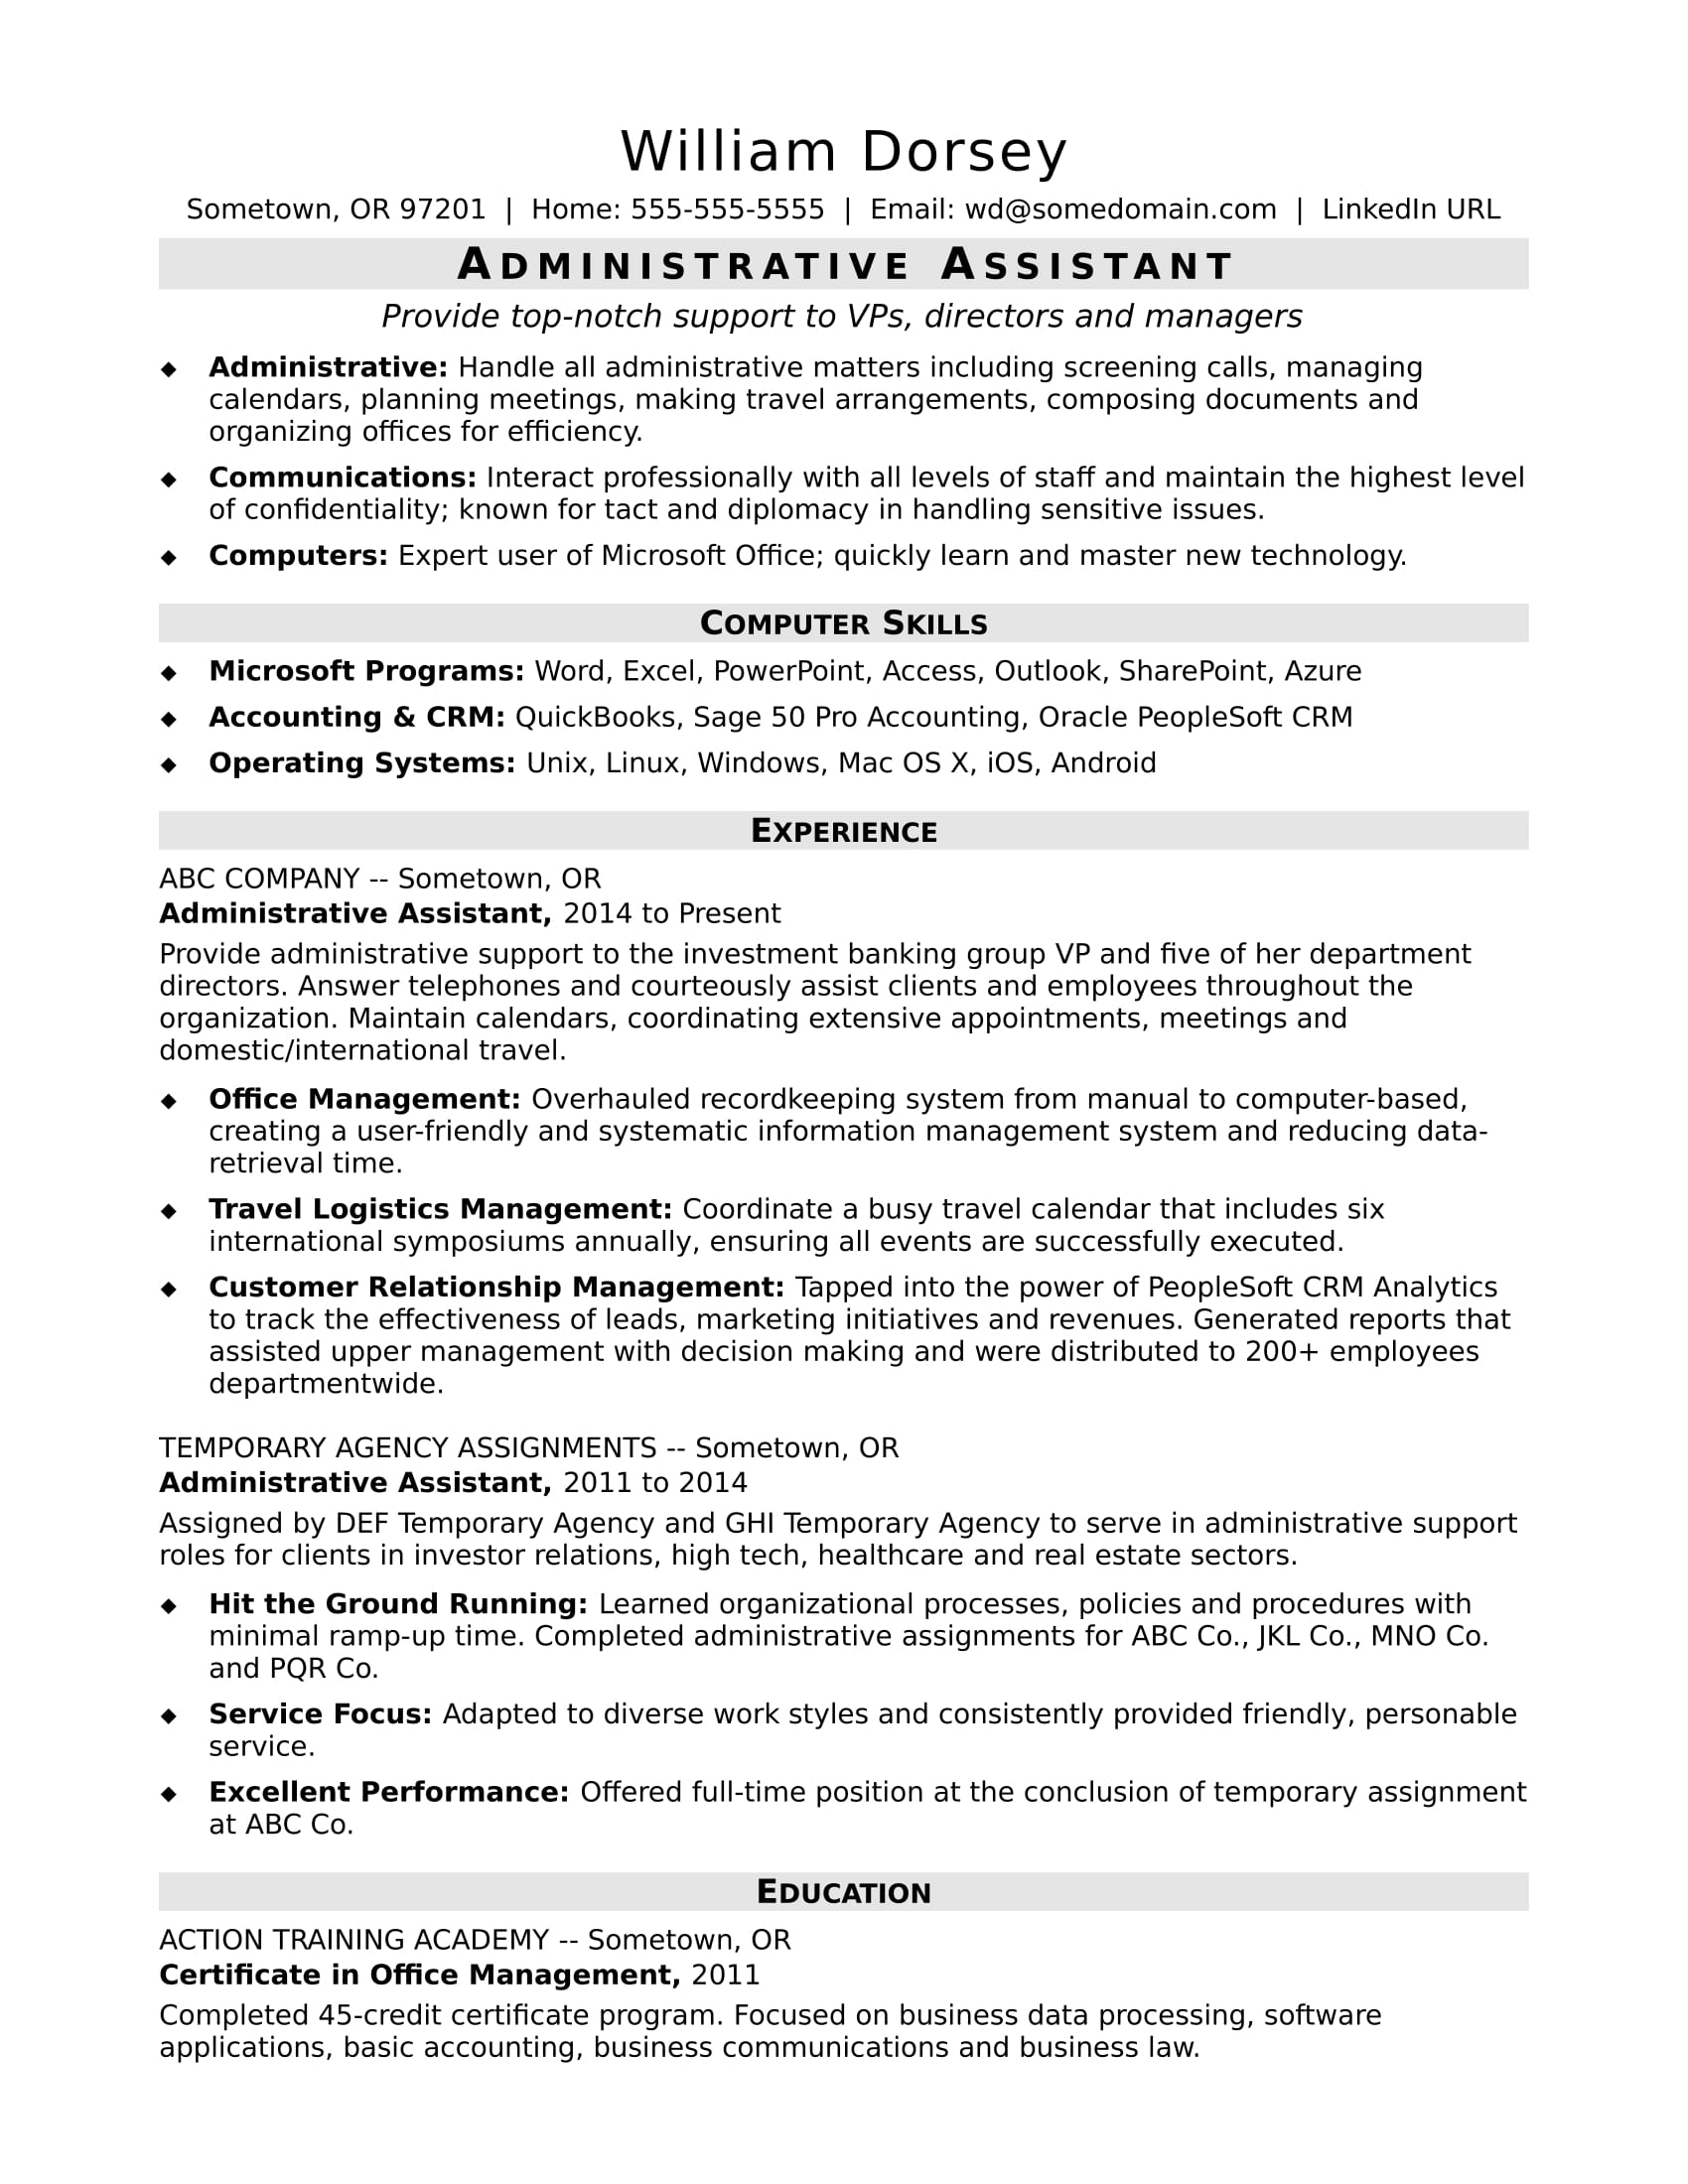 Great Sample Resume For A Midlevel Administrative Assistant Intended For Admin Assistant Resume